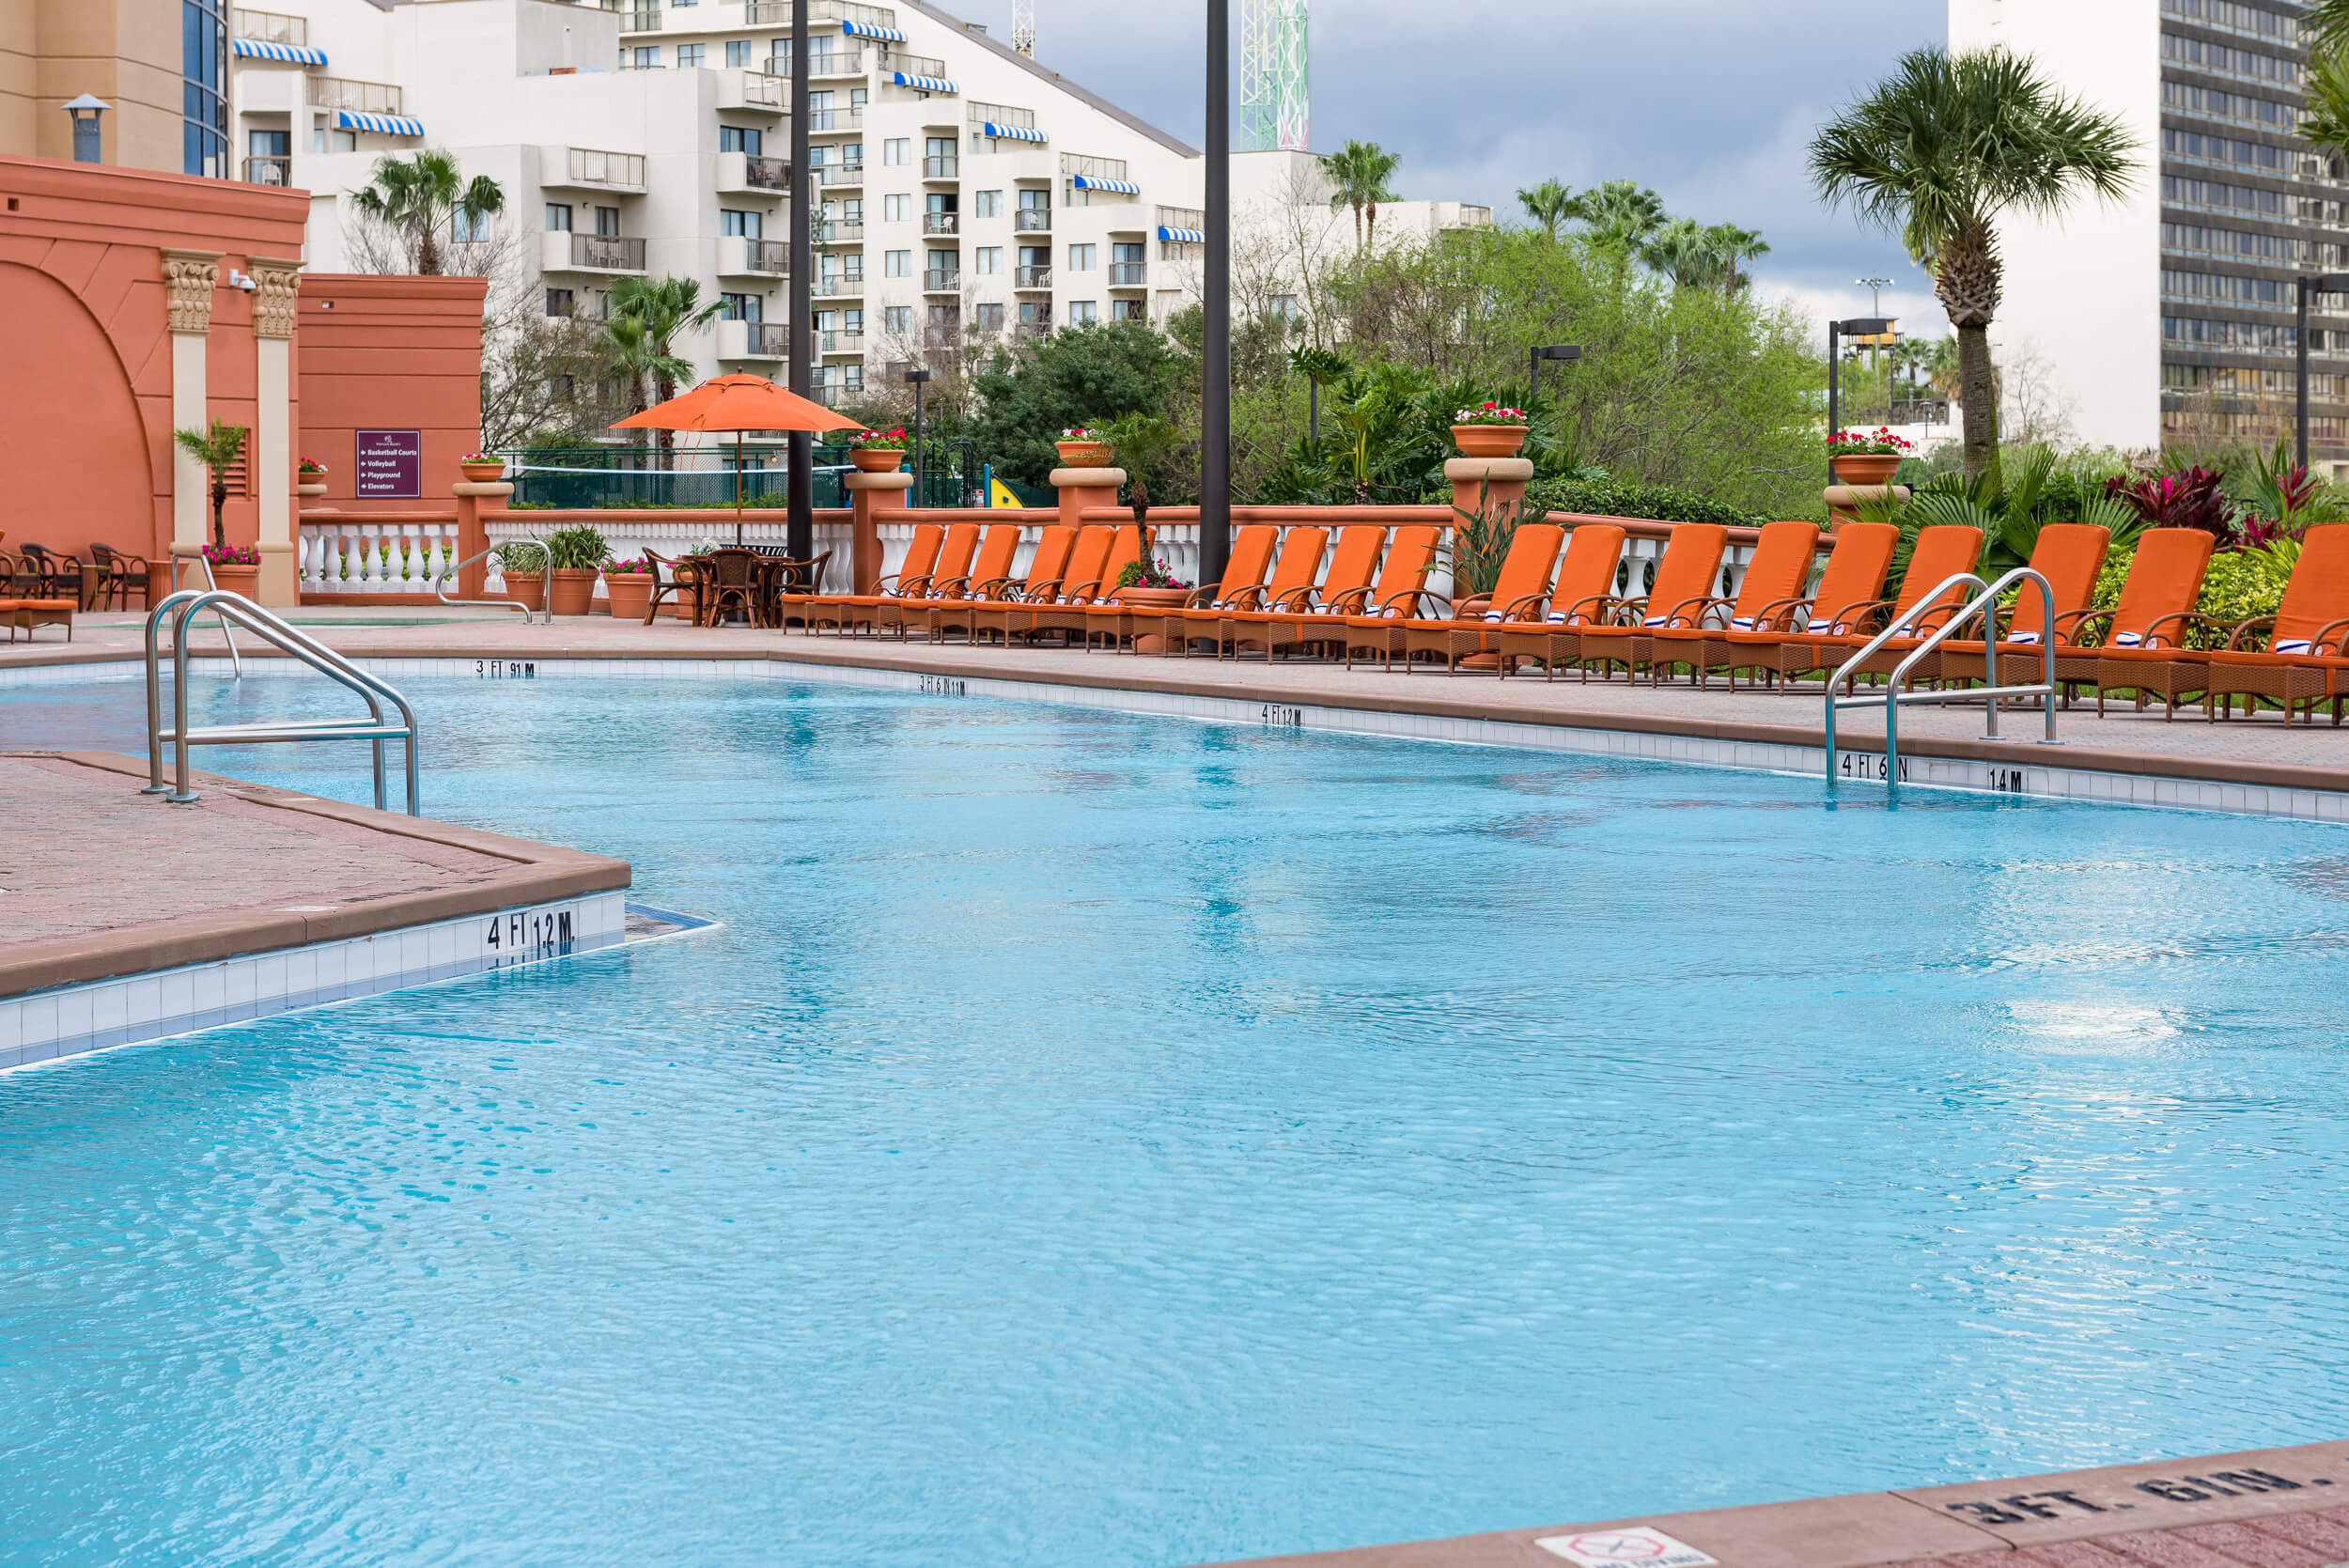 Pool at one of our resorts on international drive in Orlando Florida | Westgate Palace Resorts | Westgate Resorts